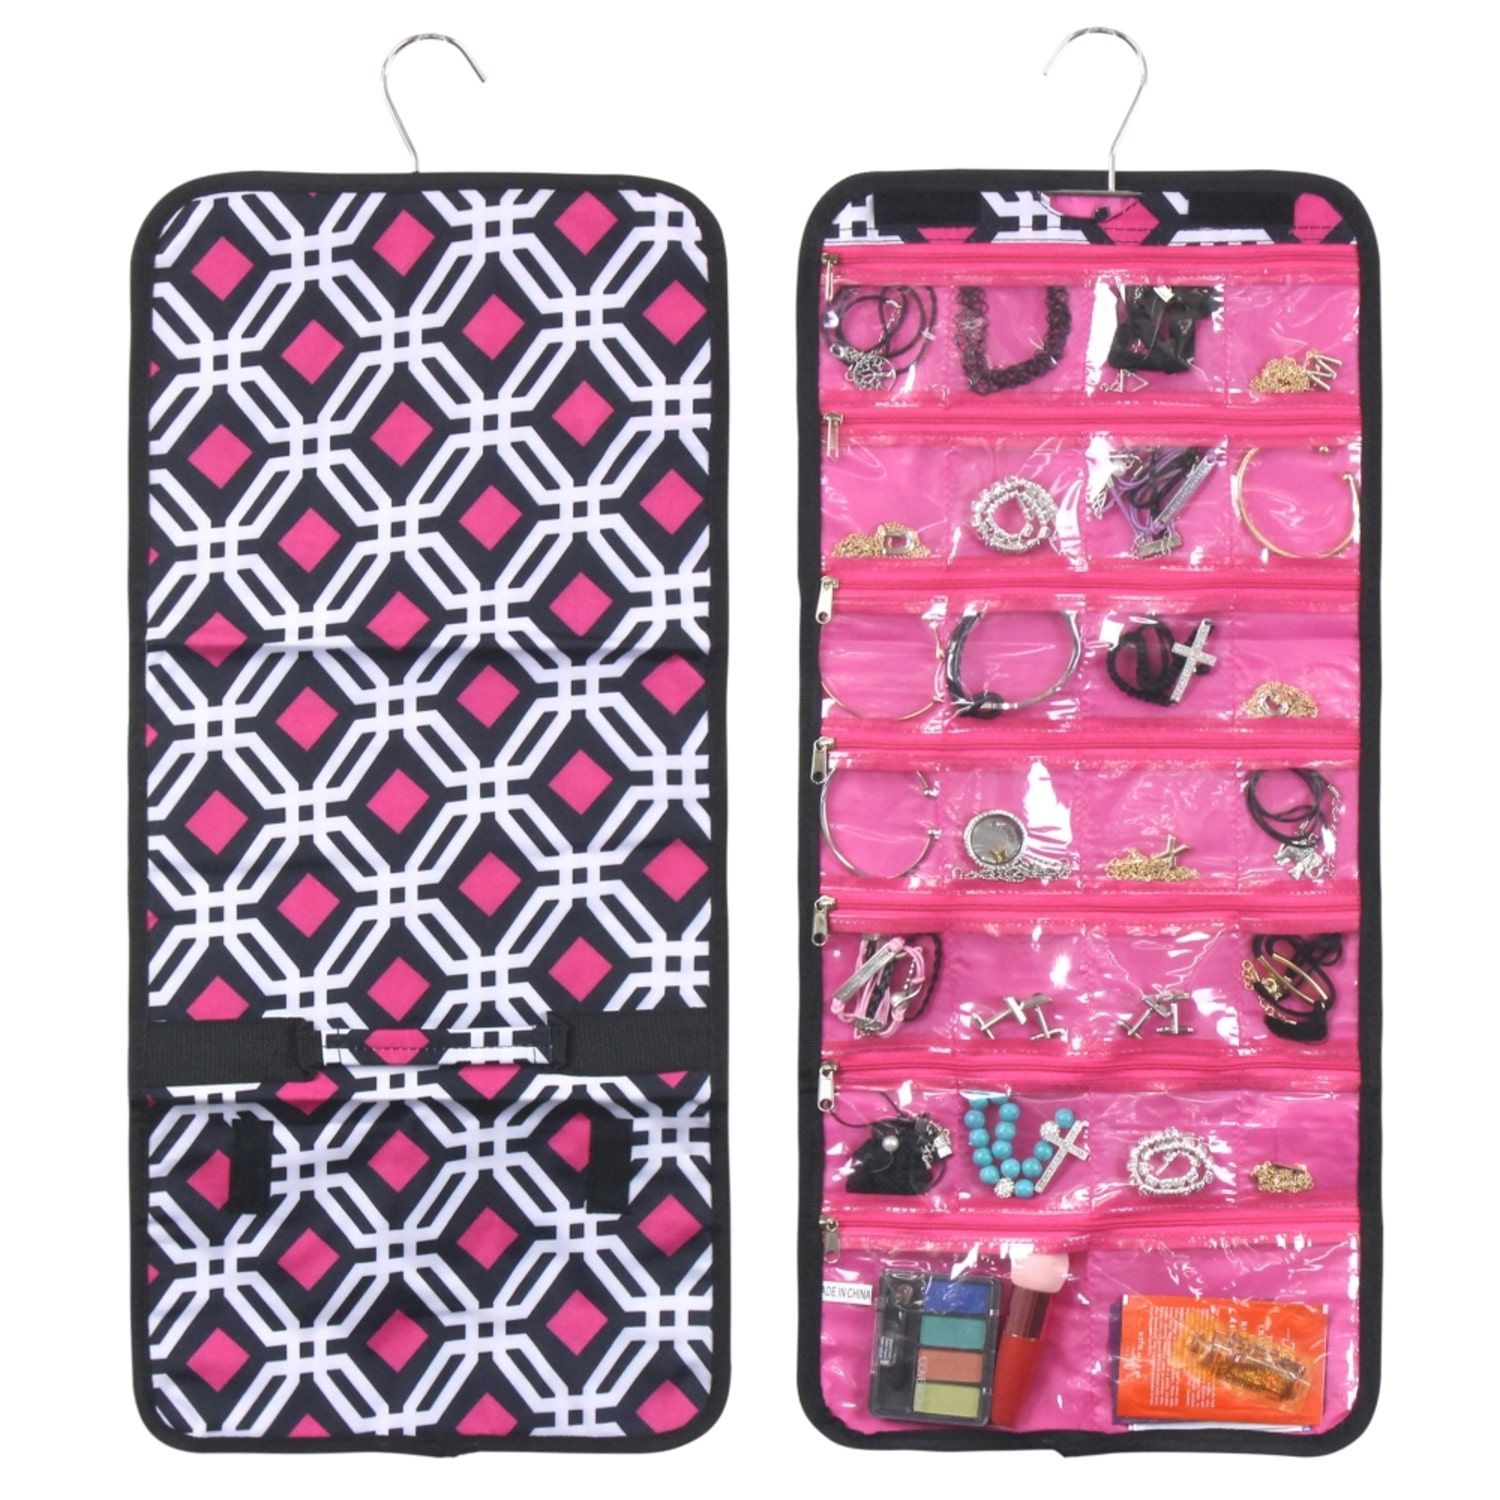 Zodaca Pink Jewelry Roll Graphic Jewelry Hanging Travel Organizer